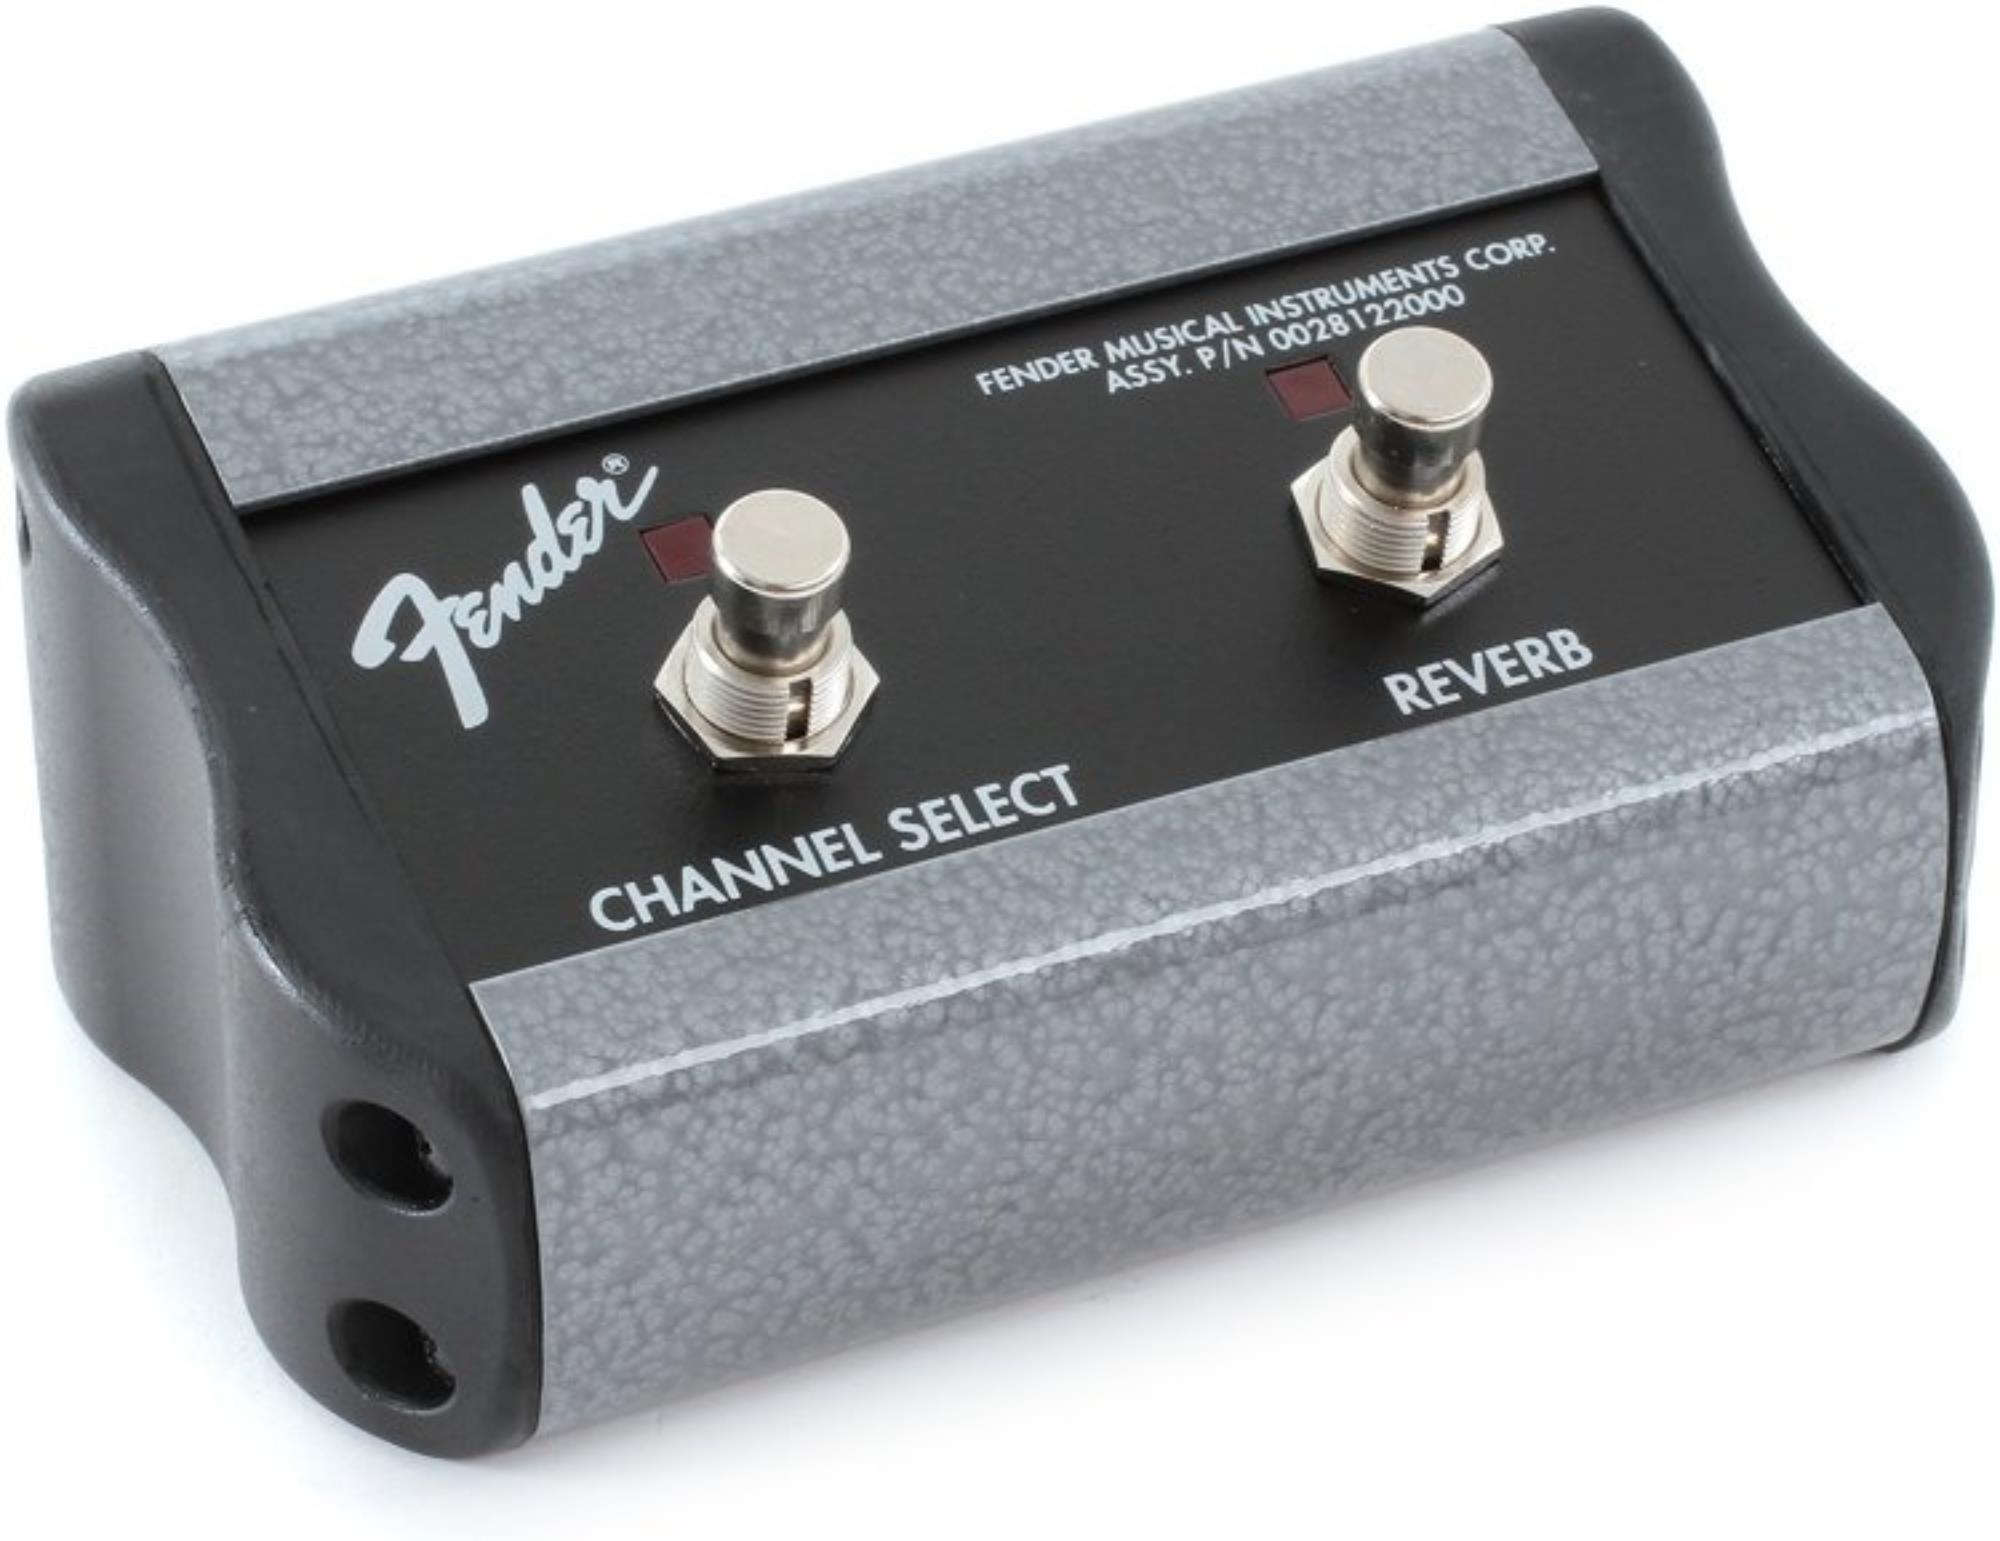 FENDER-2-Button-Footswitch-Channel-Reverb-On-Off-with-1-4-Jack-0994056000-sku-550022331